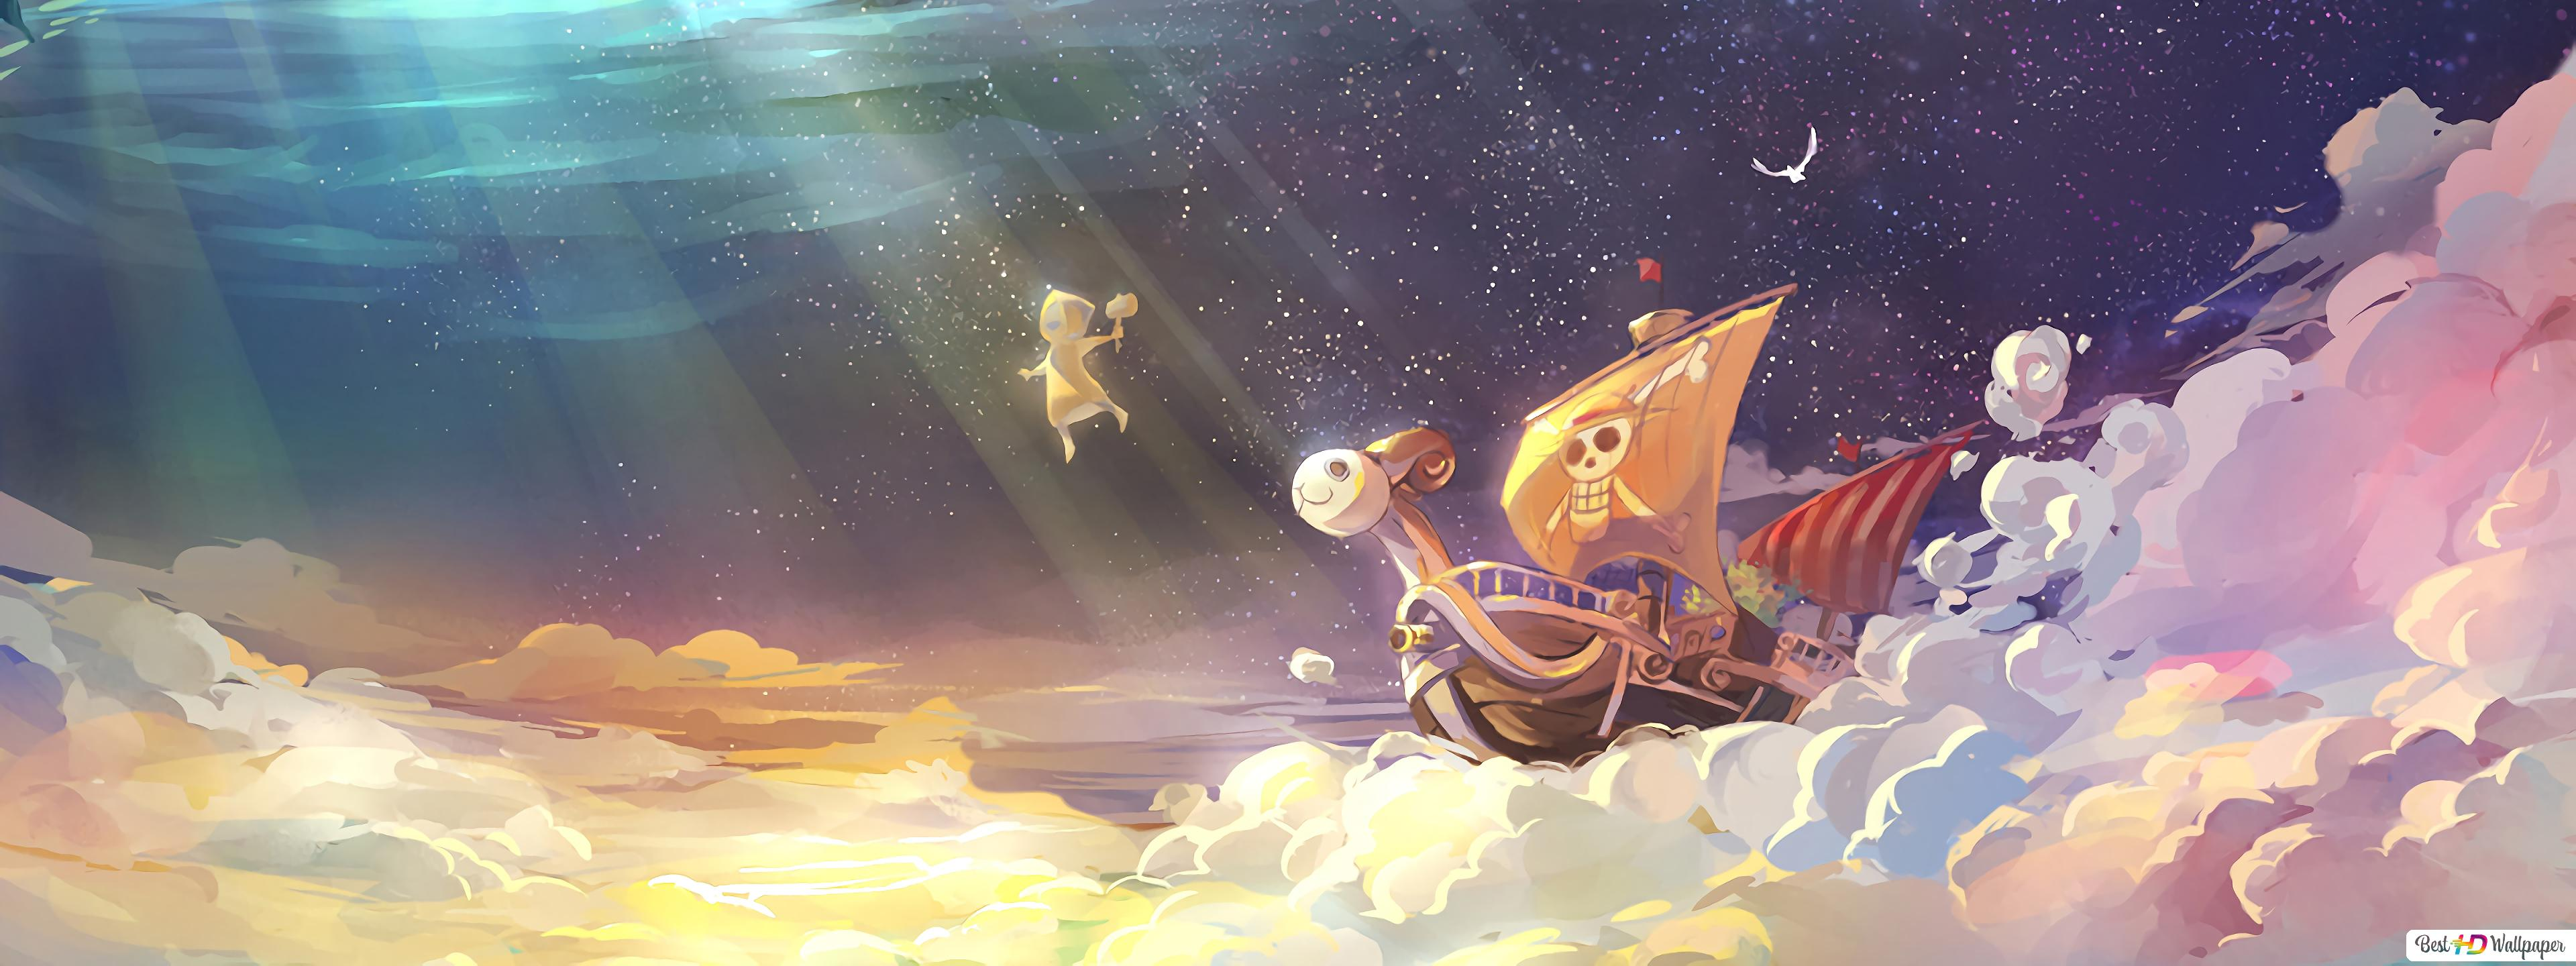 Dual Monitor Wallpaper One Piece Customize your desktop, mobile phone and tablet with our wide variety of cool and interesting one piece wallpapers in just a few clicks! dual monitor wallpaper one piece